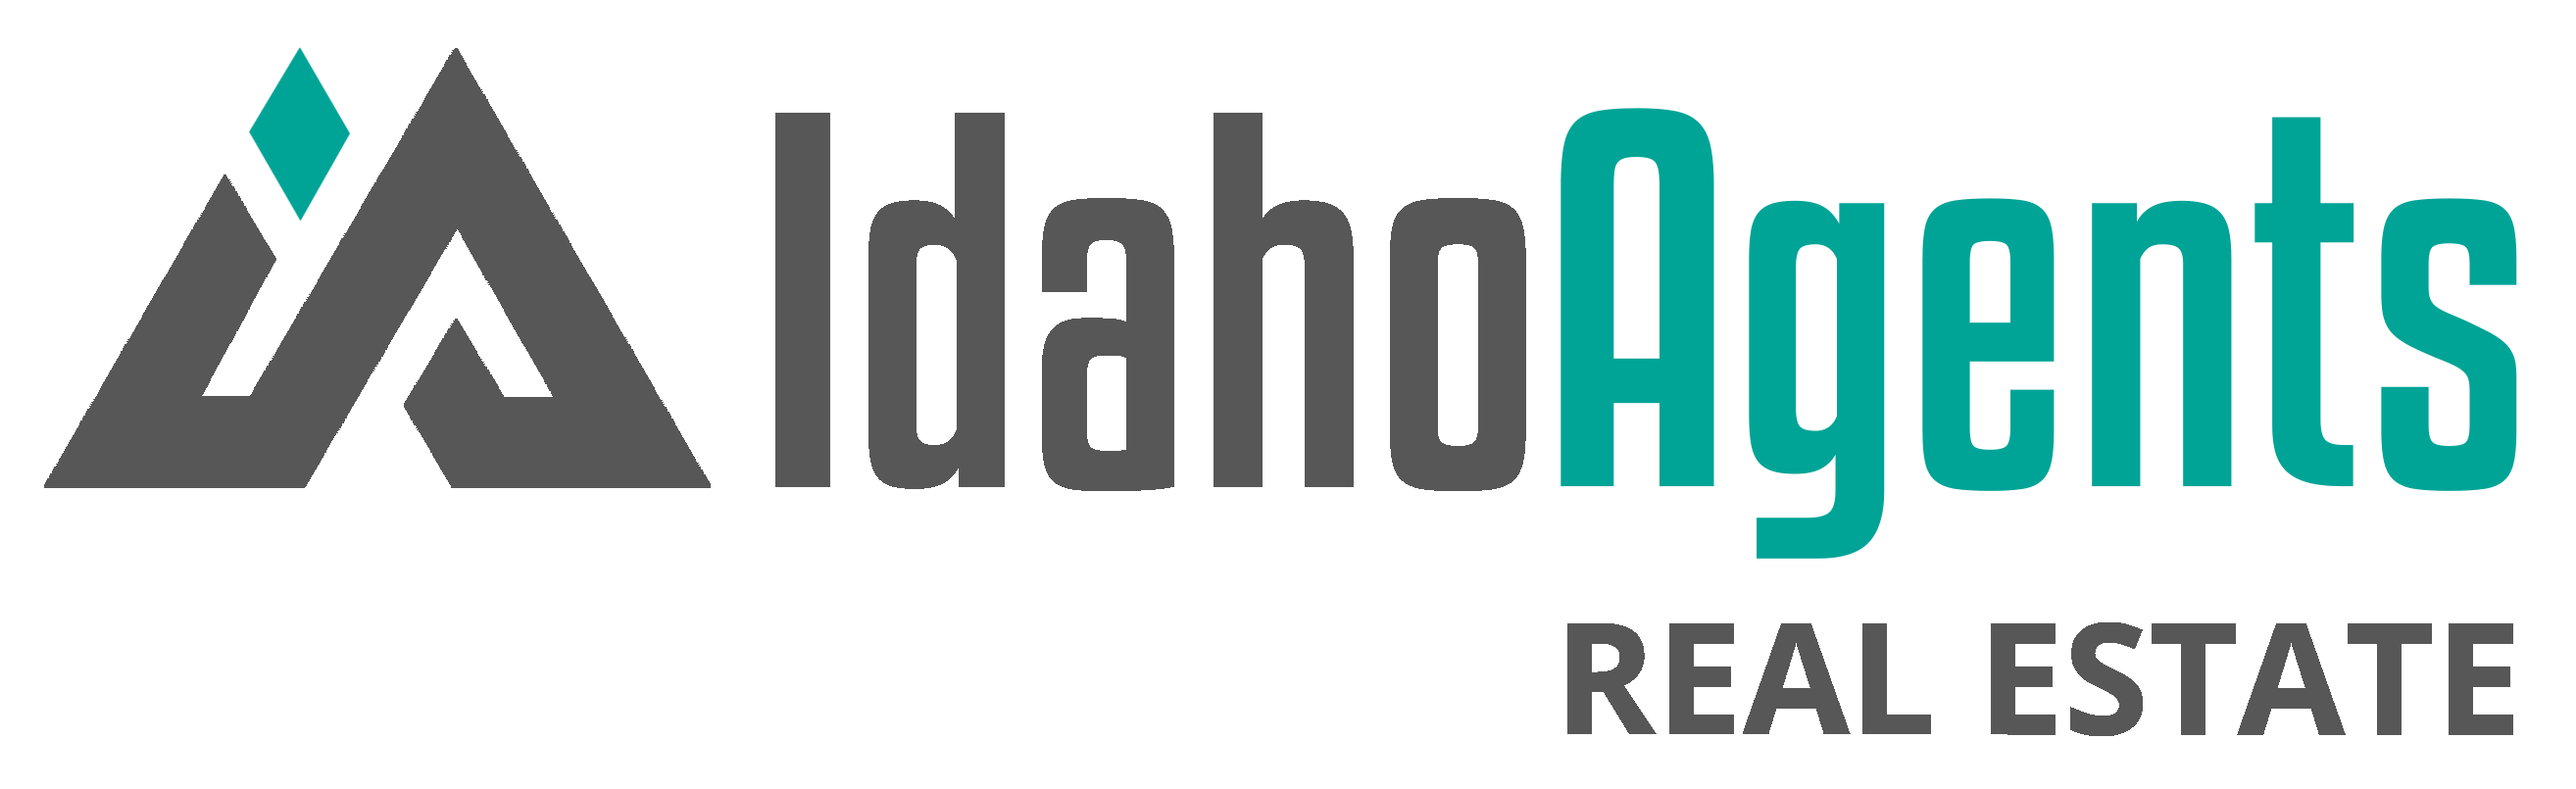 Brokered by Idaho Agents Real Estate